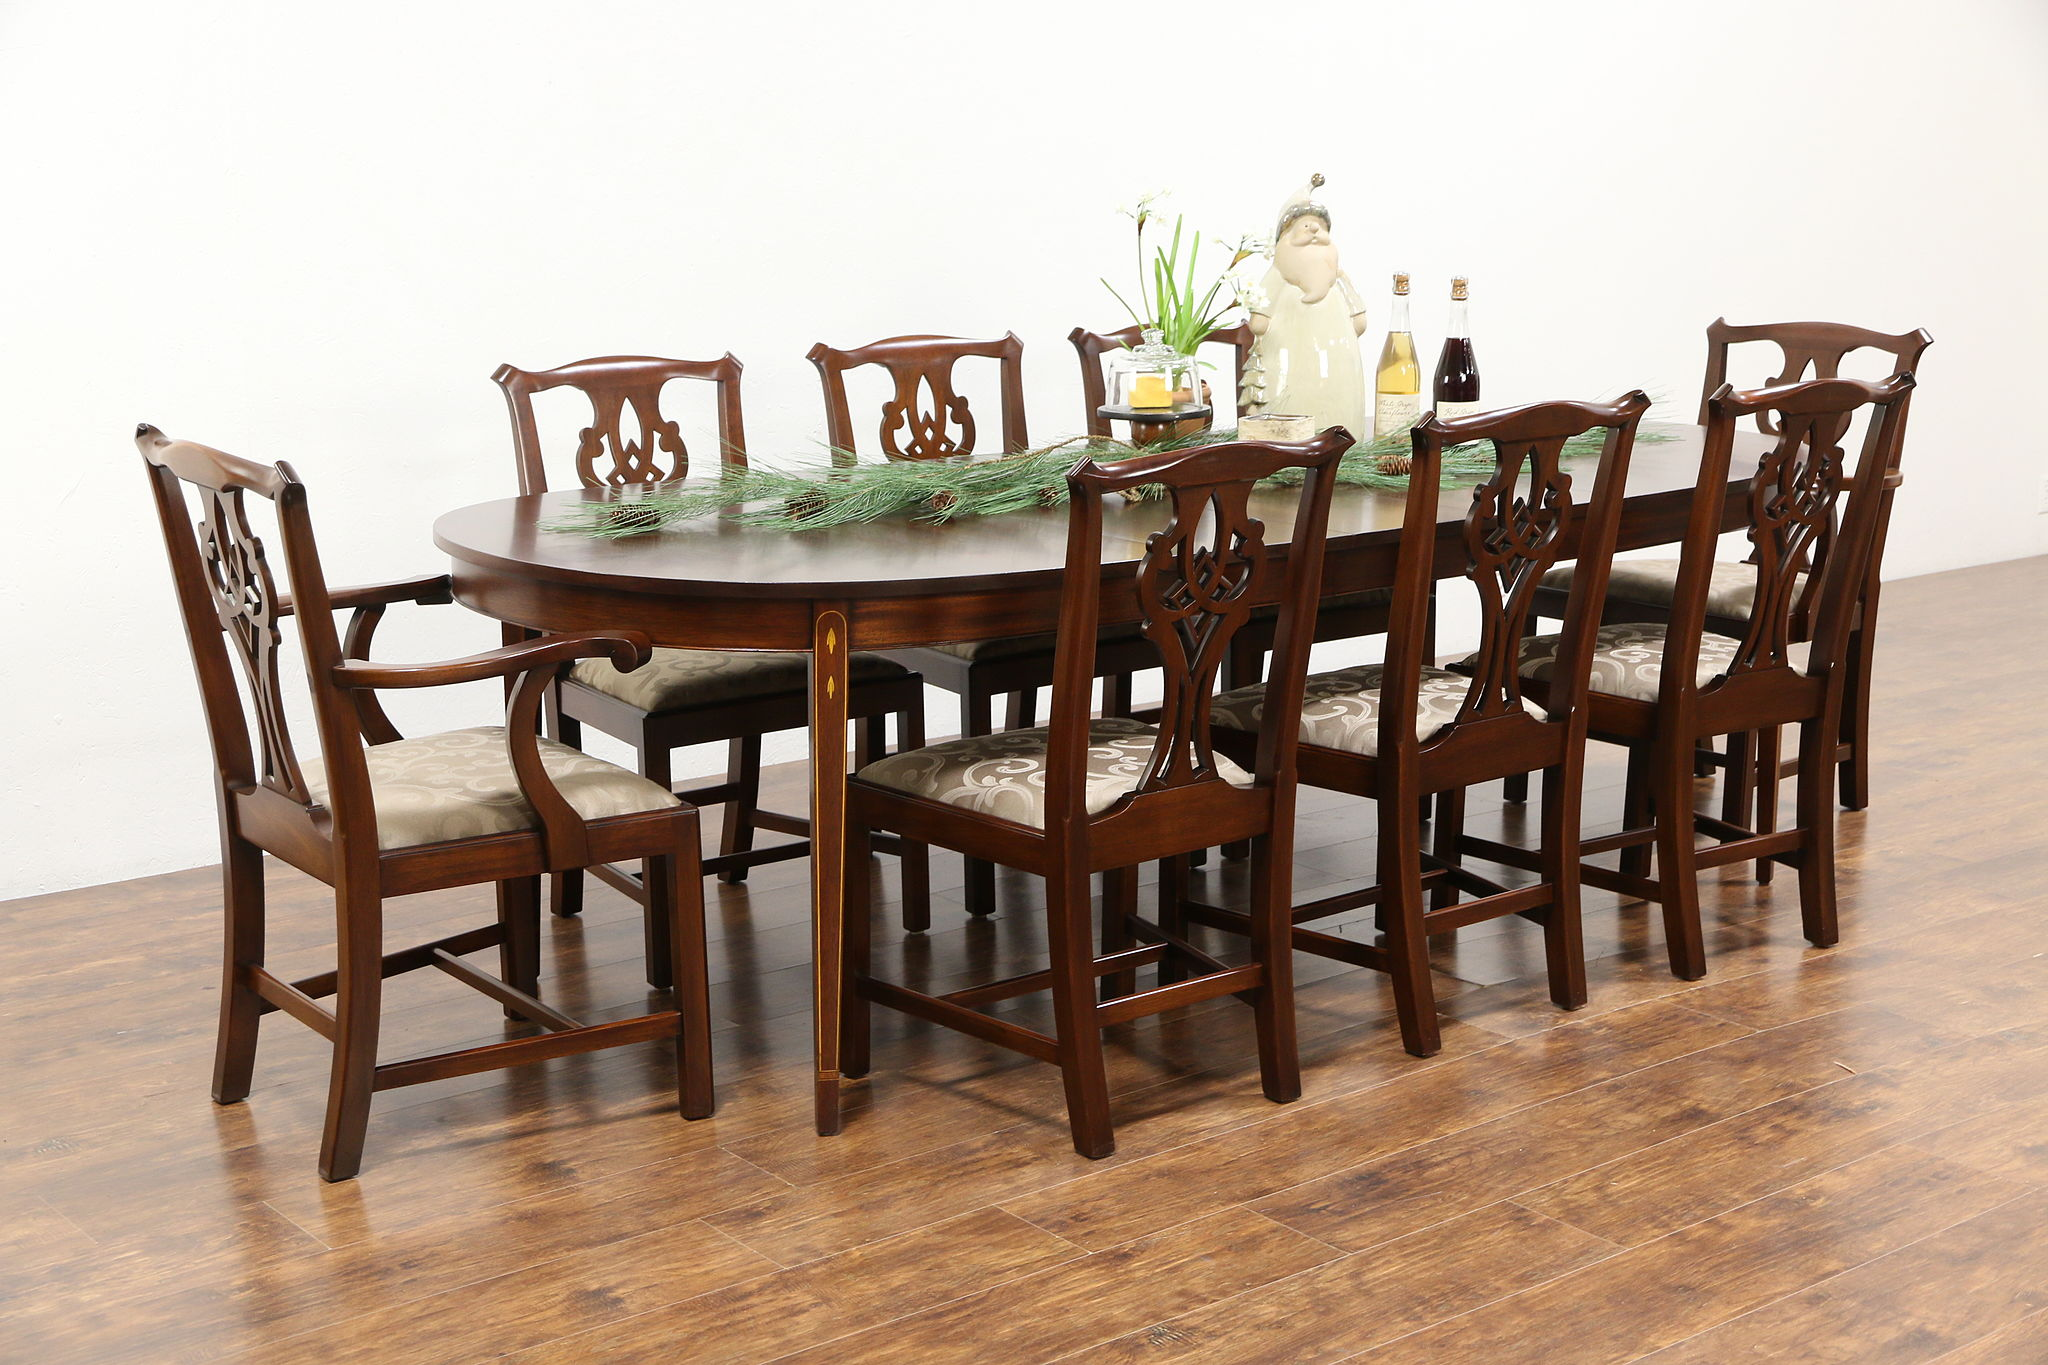 8 Chair Dining Set Traditional Mahogany Dining Set Table 3 Leaves 8 Chairs Signed Henkel Harris